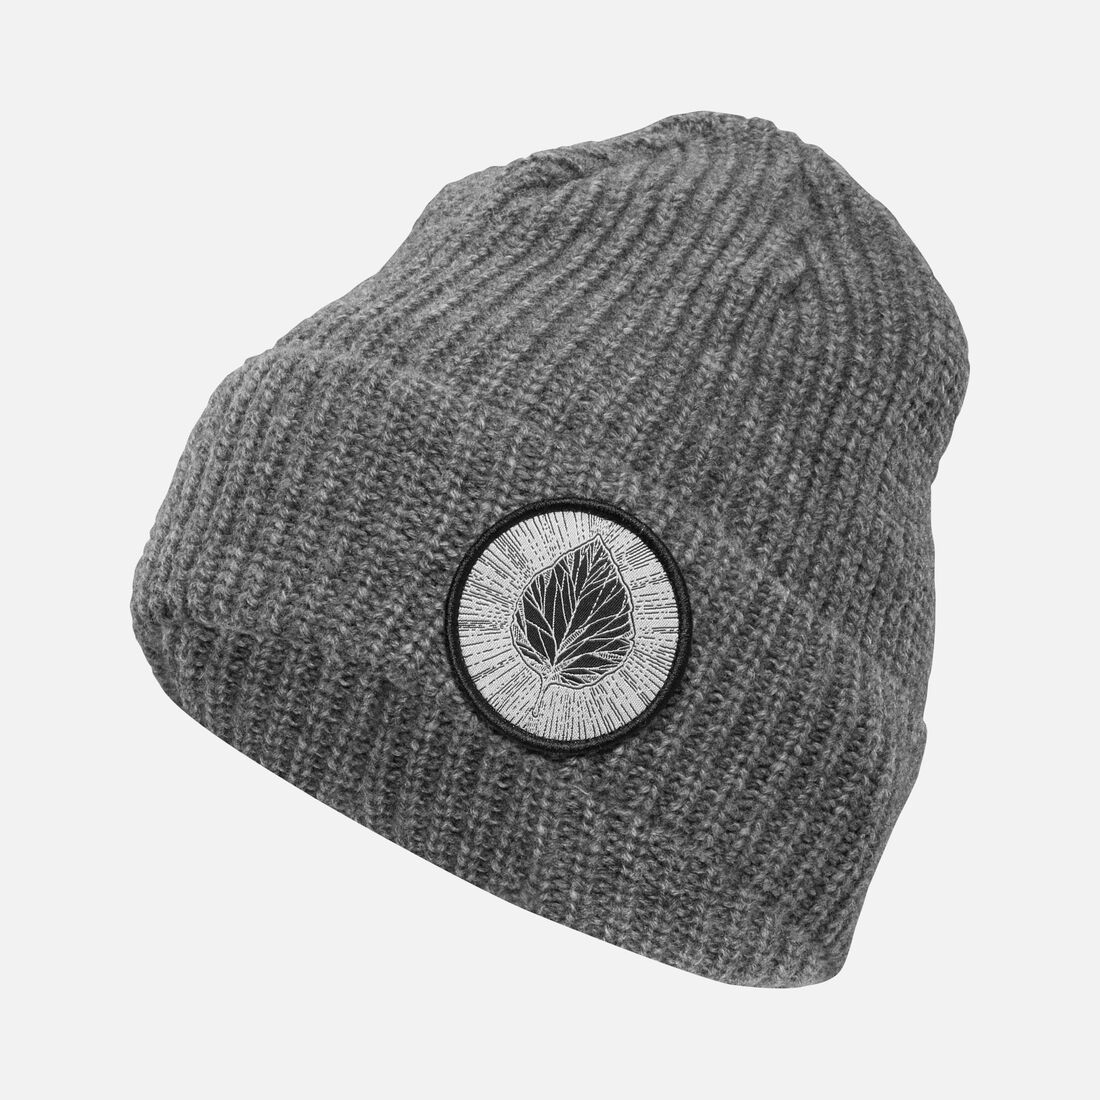 Collins Leaf Beanie in Charcoal - large view.